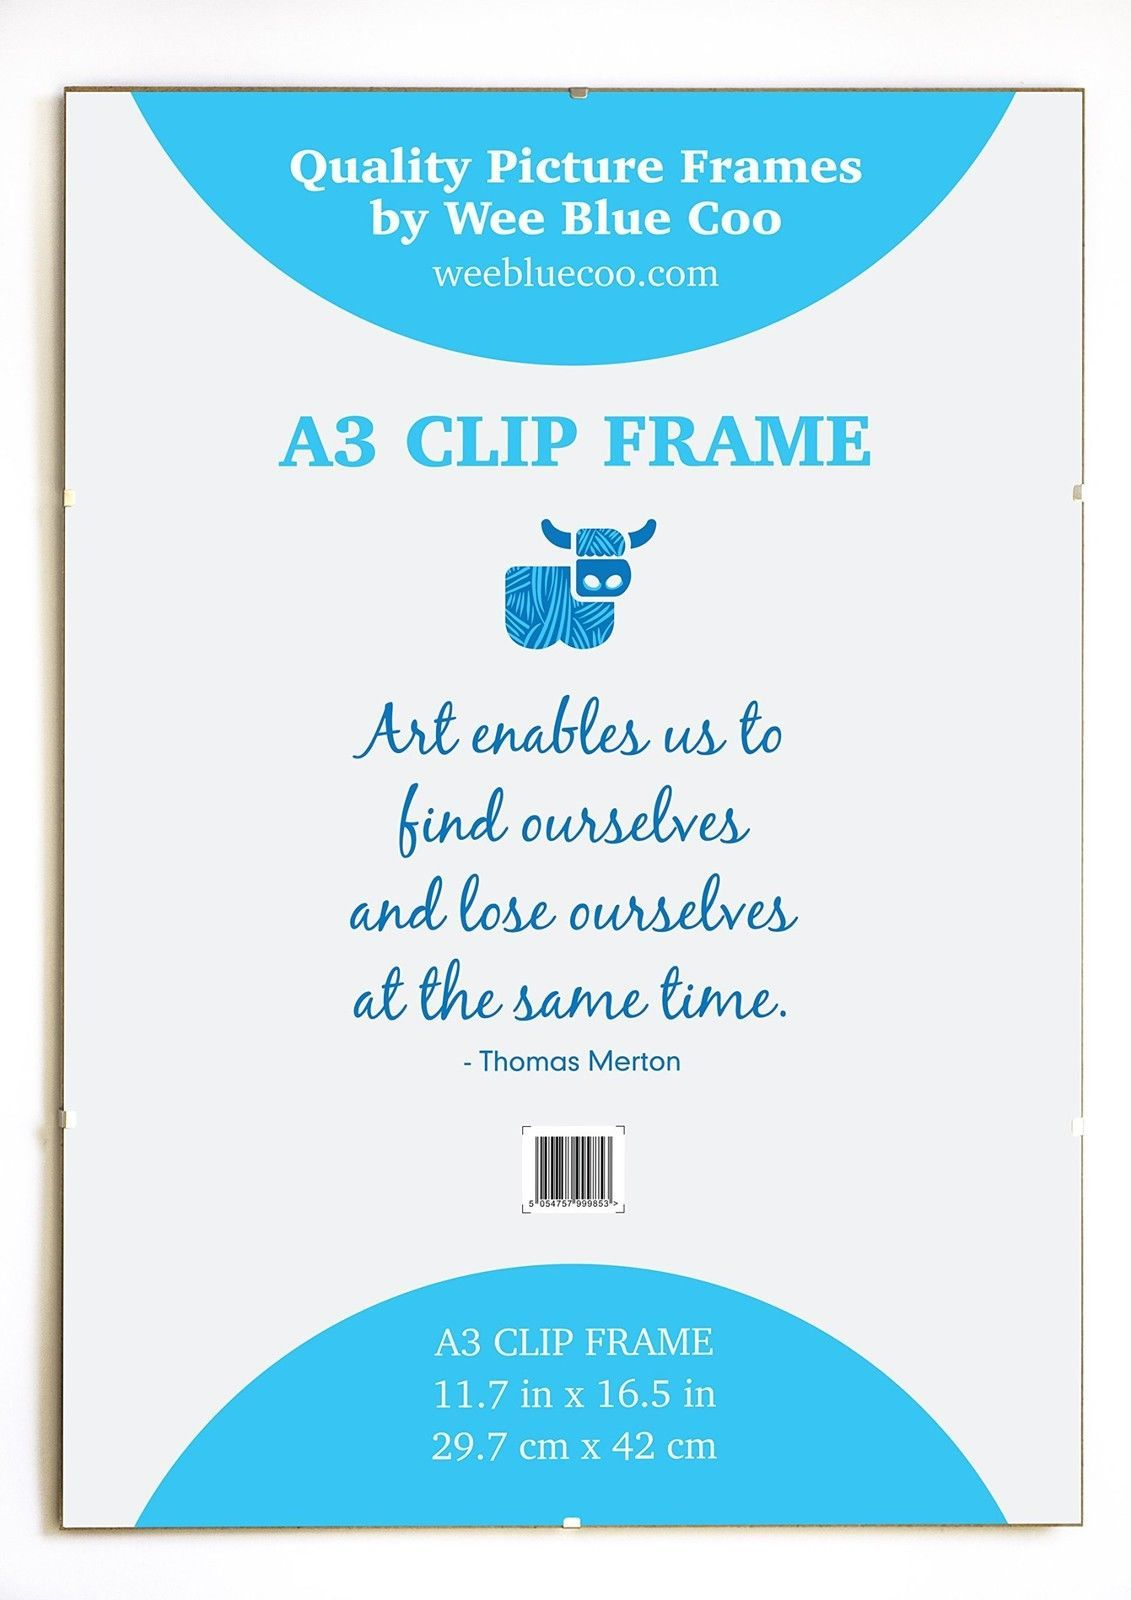 A3 Clip Frame Clipframe Borderless Picture Photo Frame Acryllic Safety 039 Glass 039 B Clip Frame Quality Picture Frames Photos For Sale